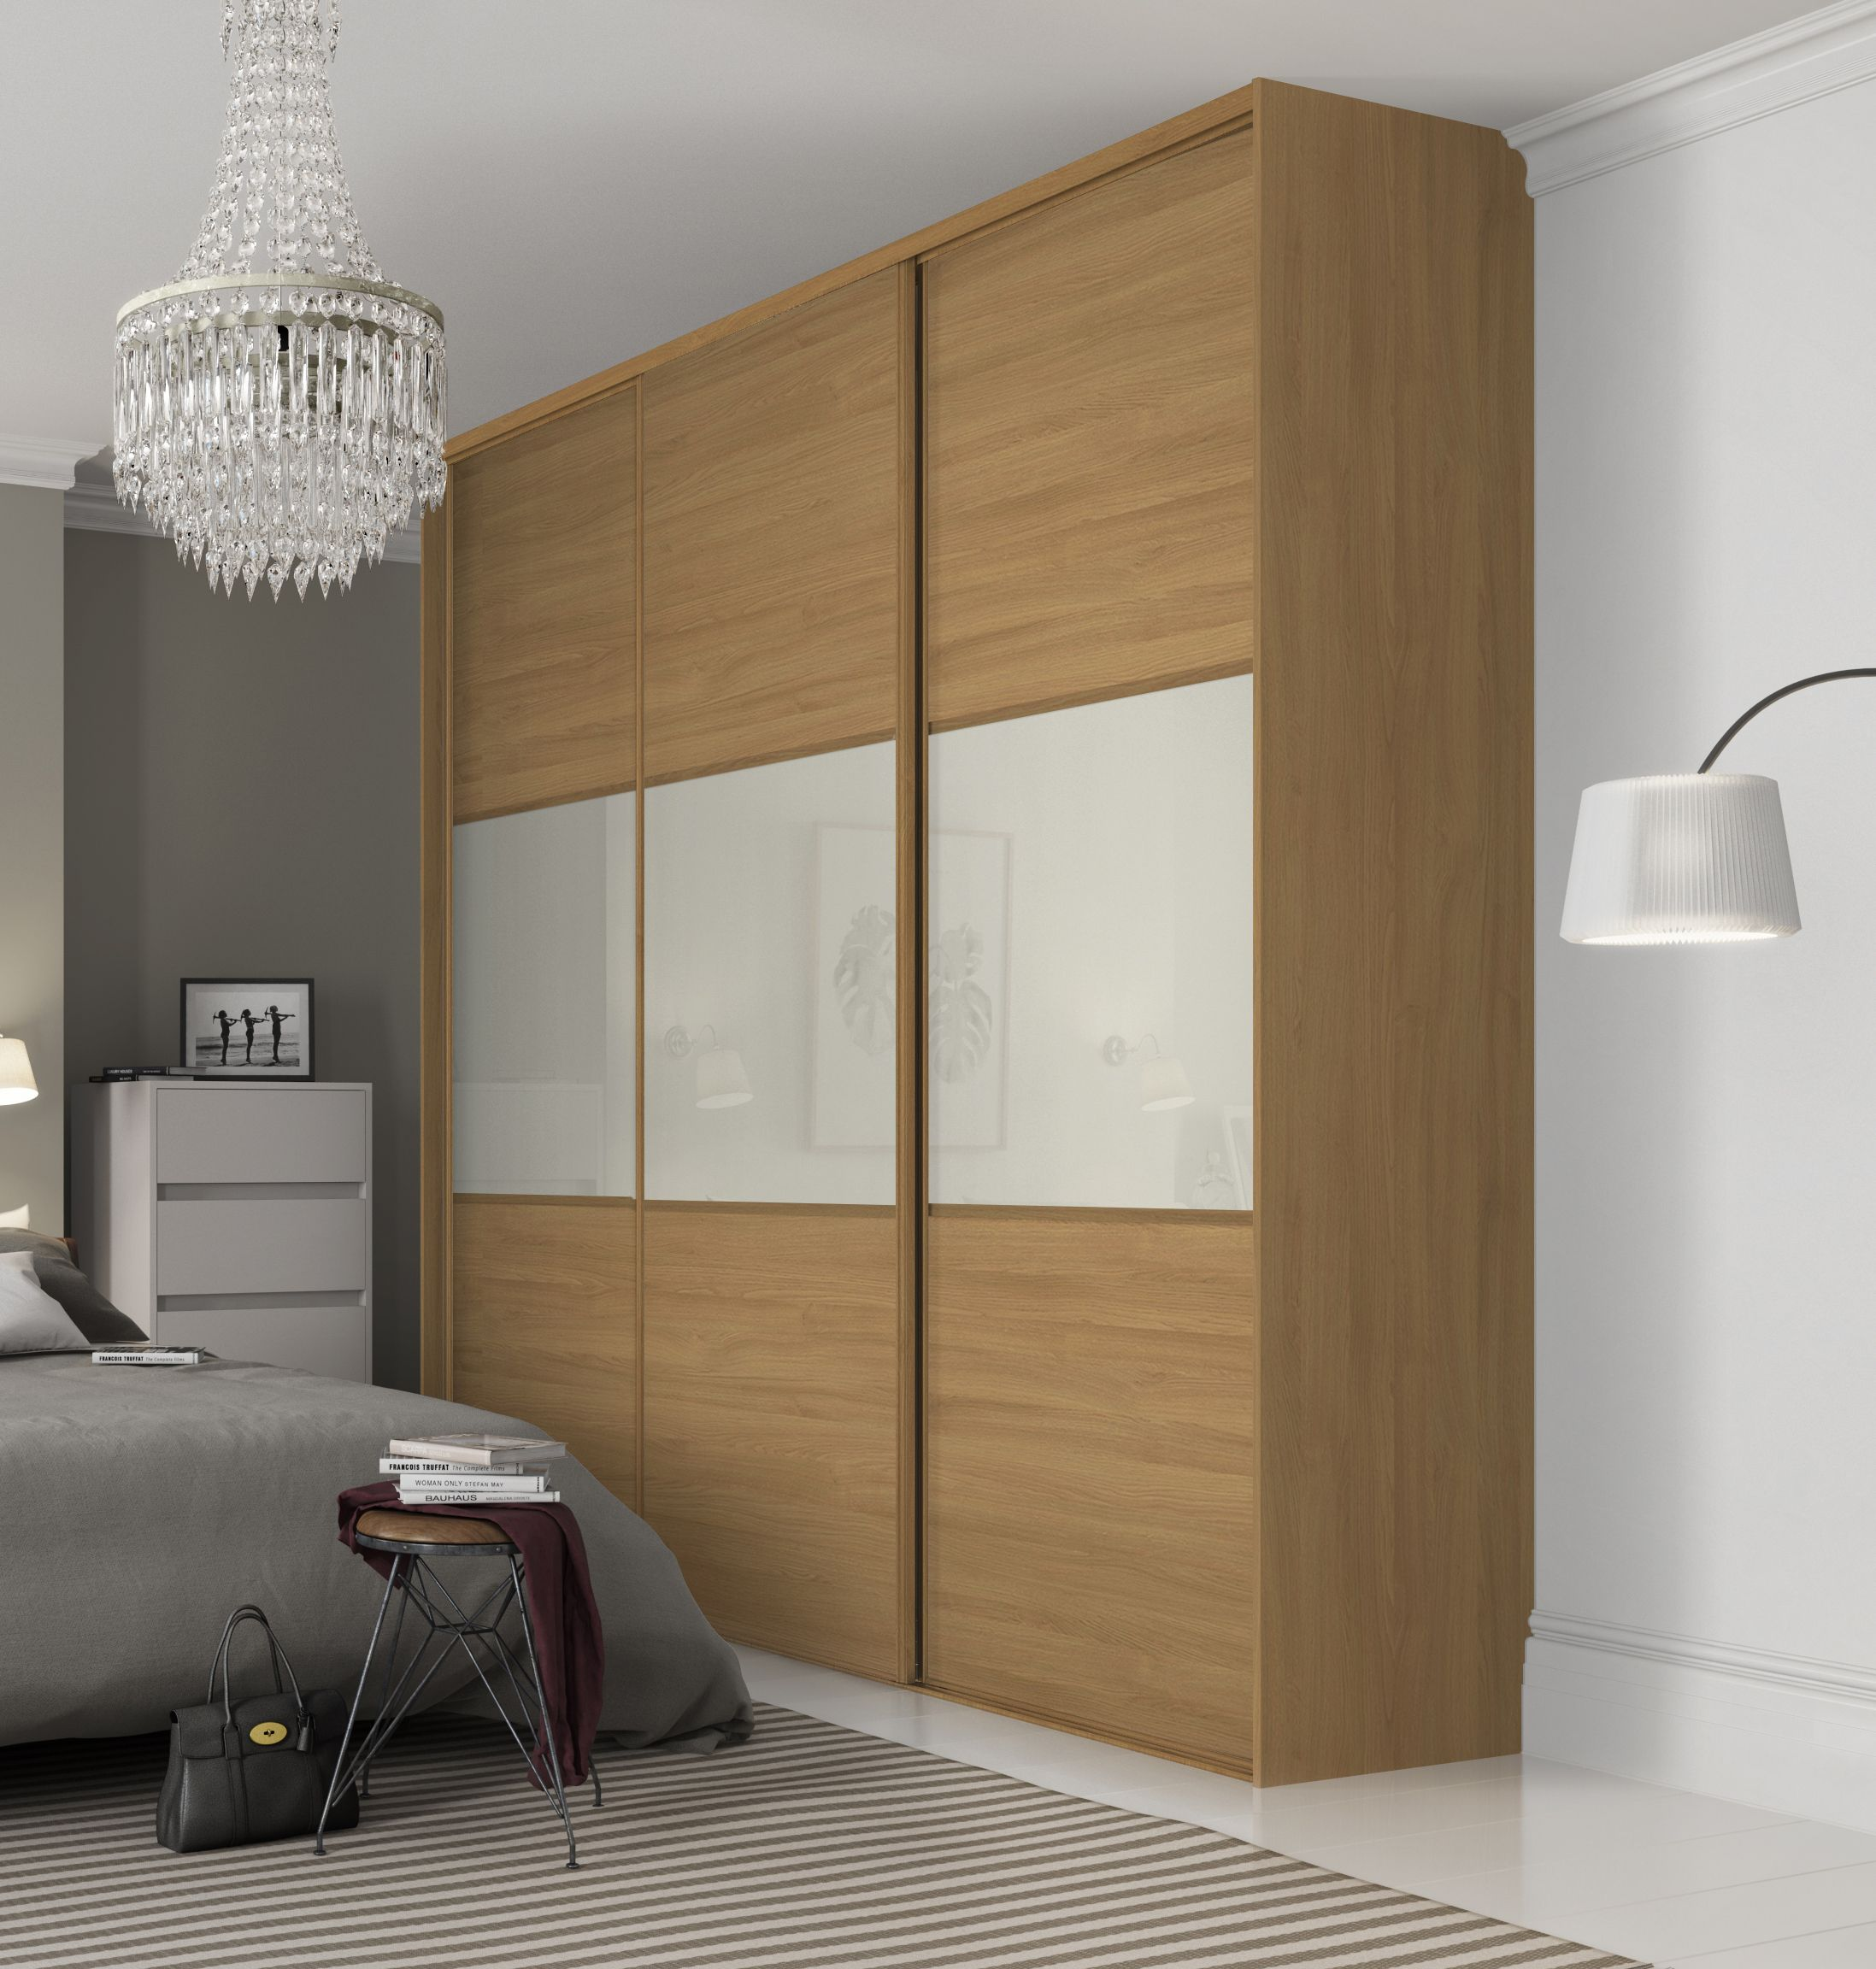 Beautiful classic three panel sliding wardrobe doors in Oak and Soft White finish with Oak